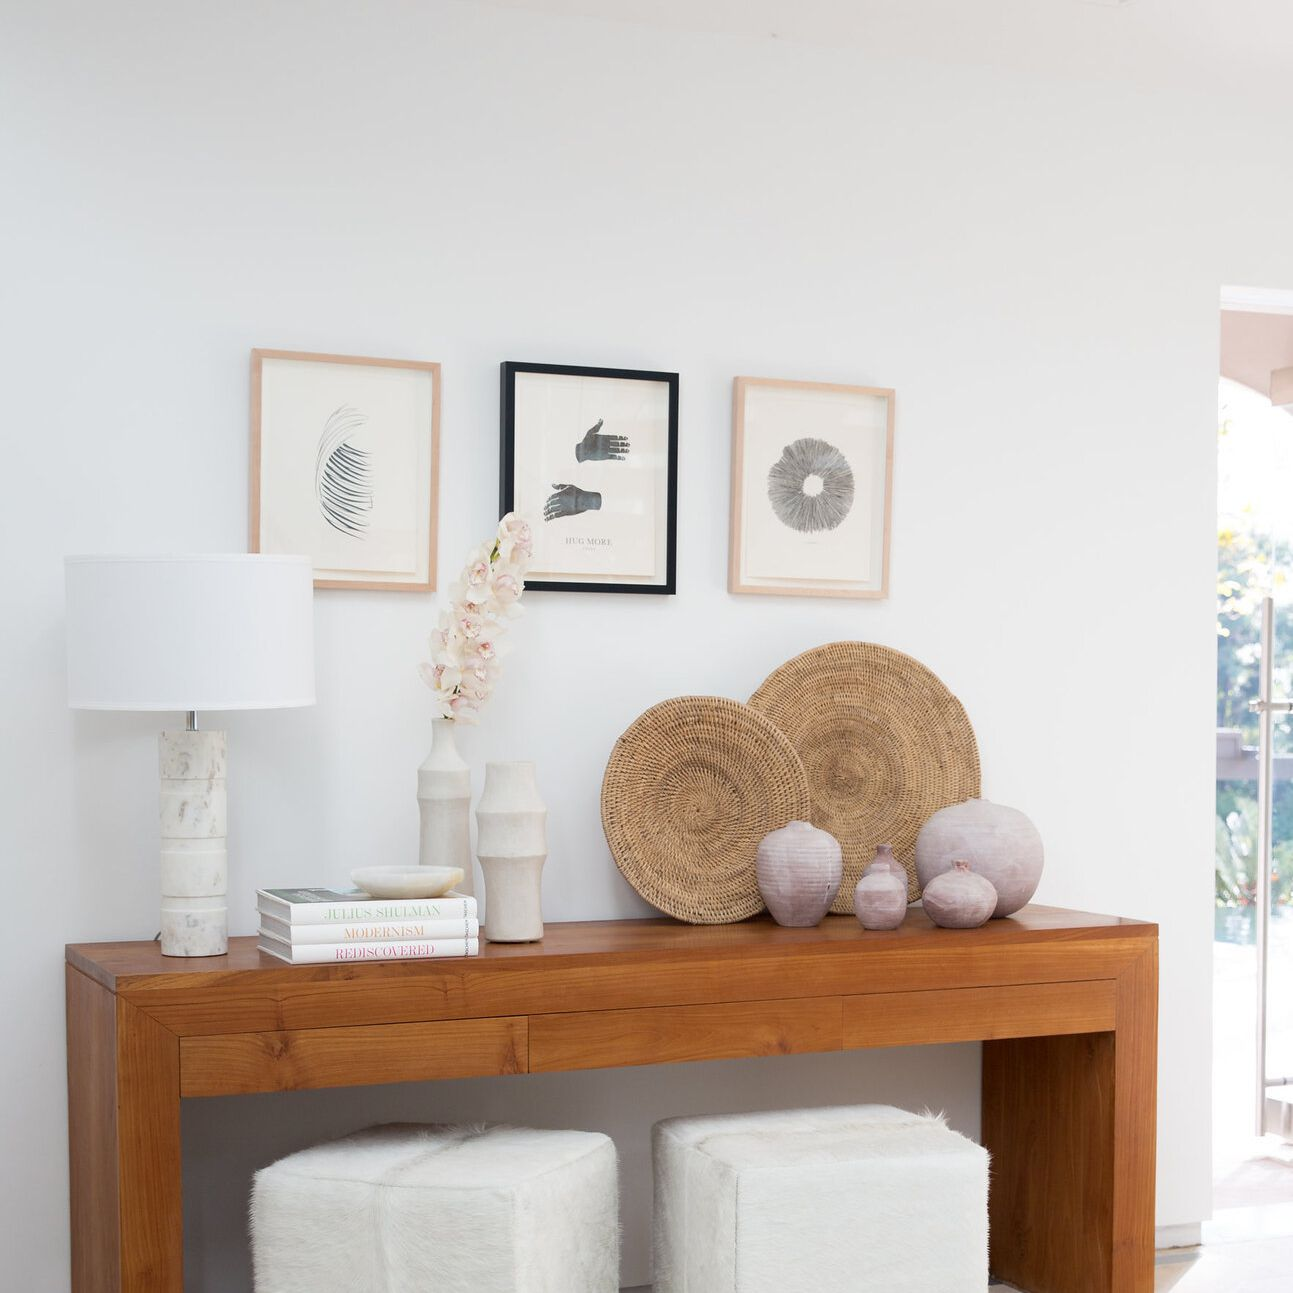 White wall with framed art